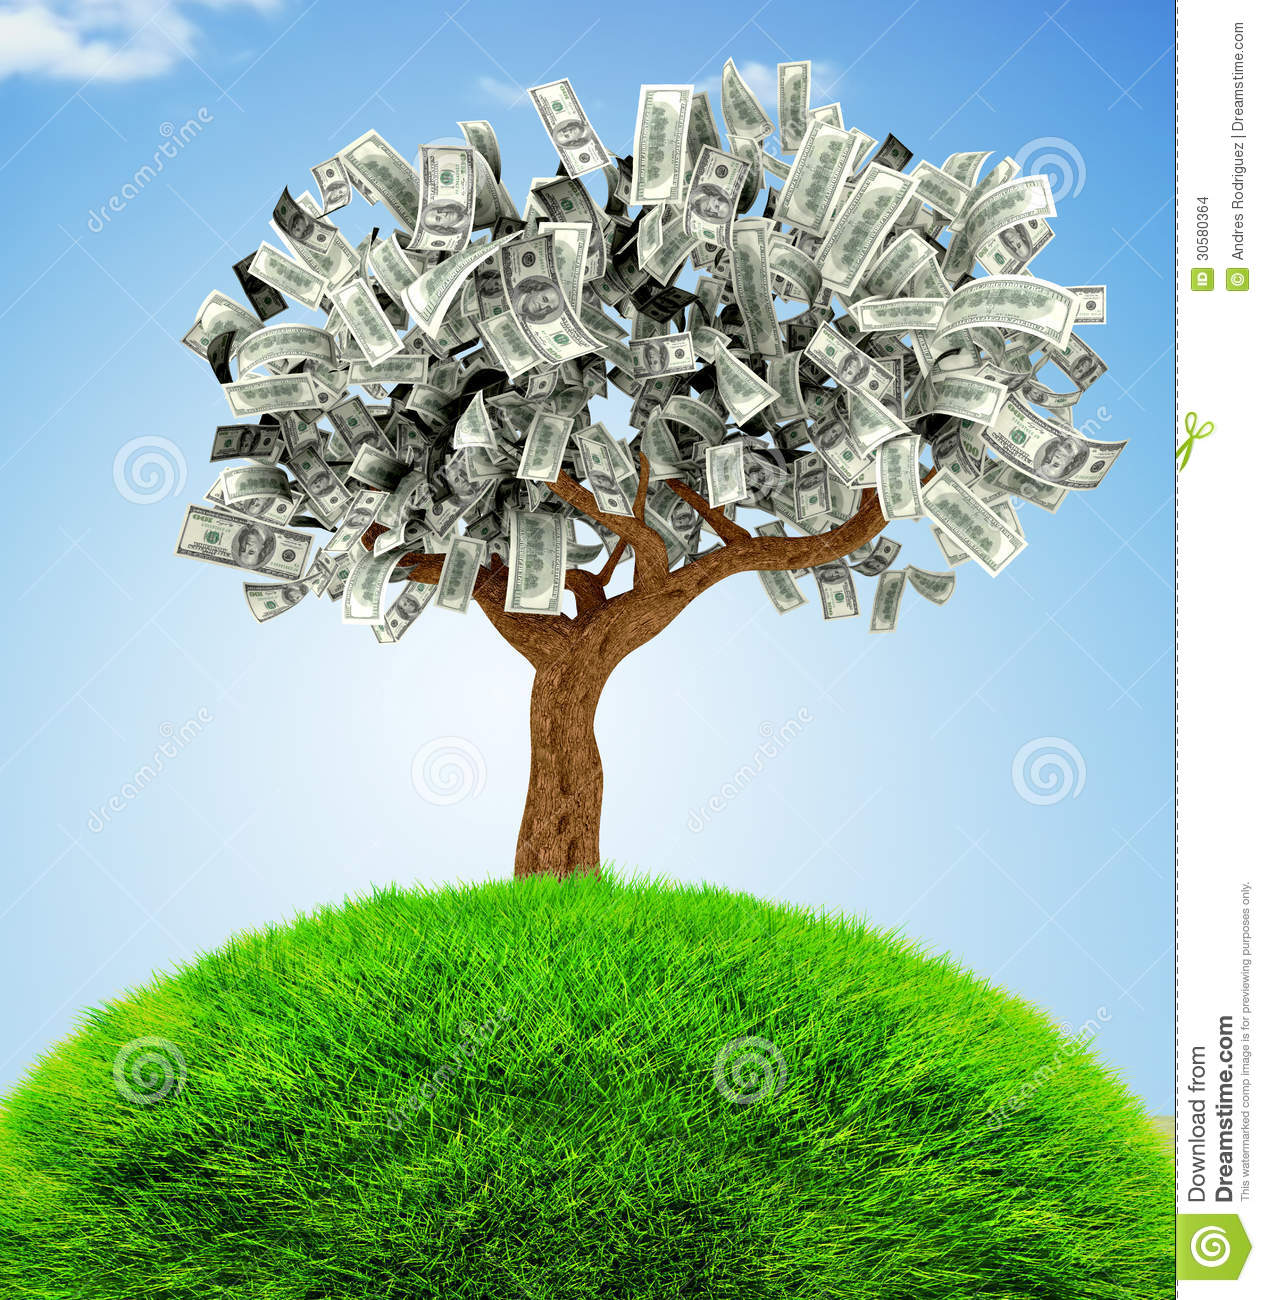 Finance Tree: 3D Money Growing On Trees Stock Images